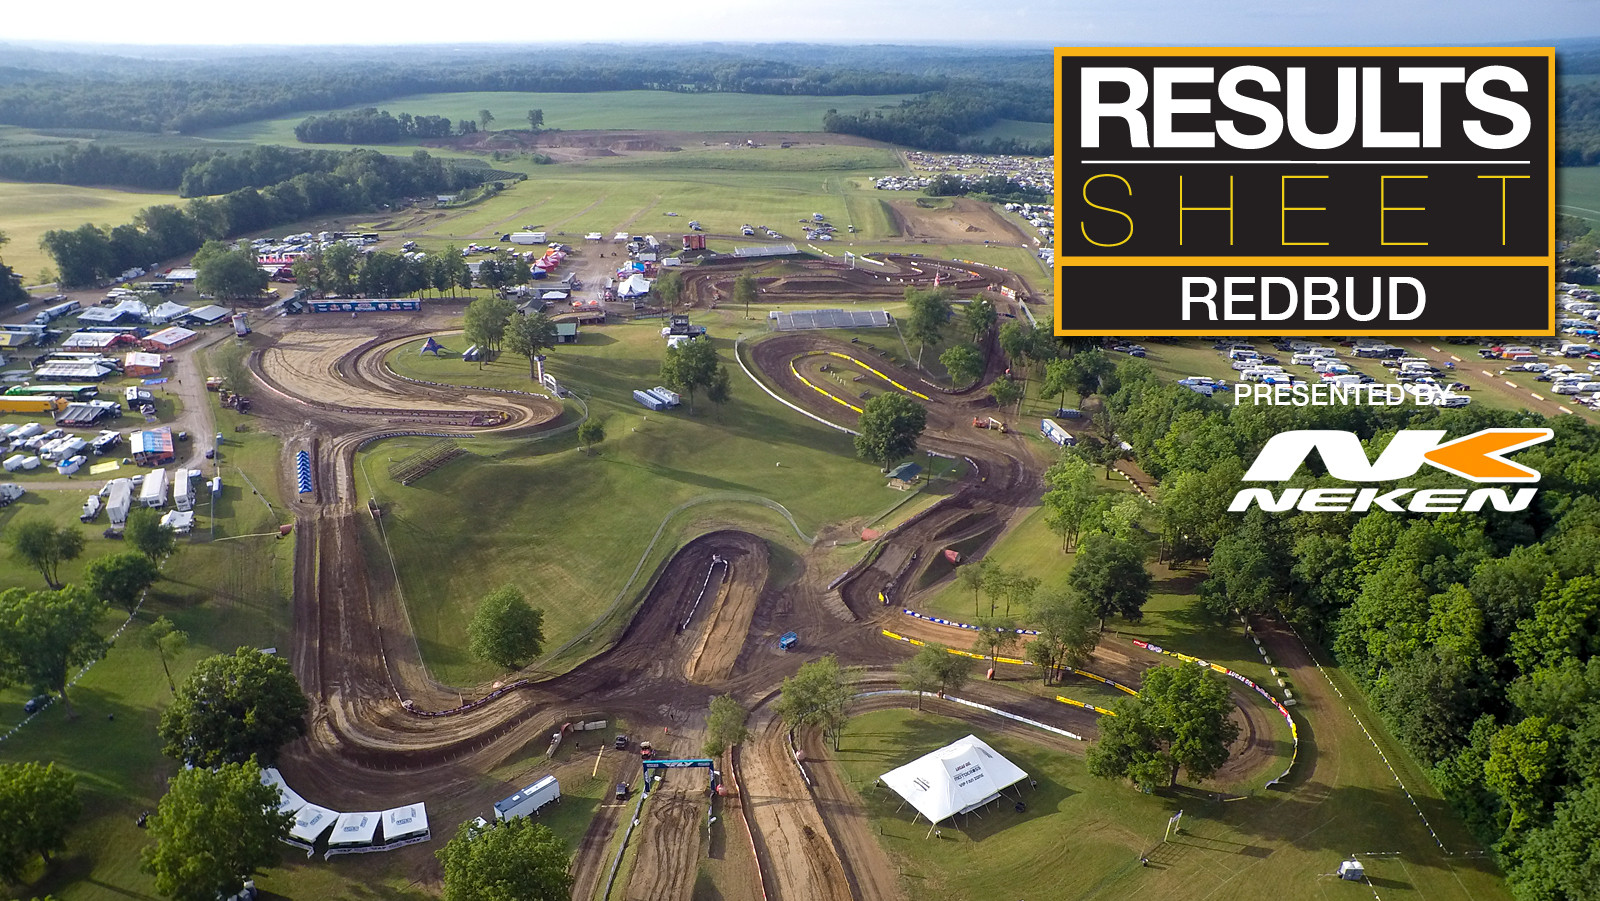 Results Sheet: RedBud